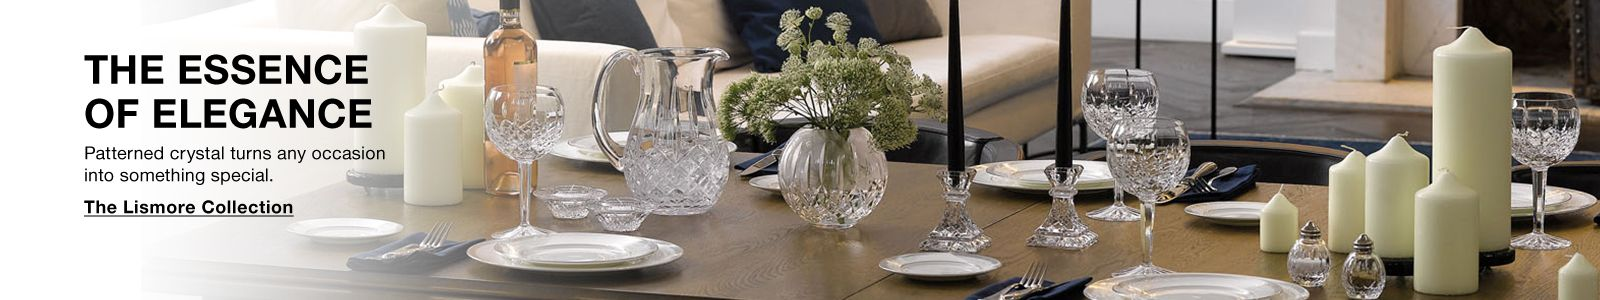 The Essence of Elegance, The Lismore Collection